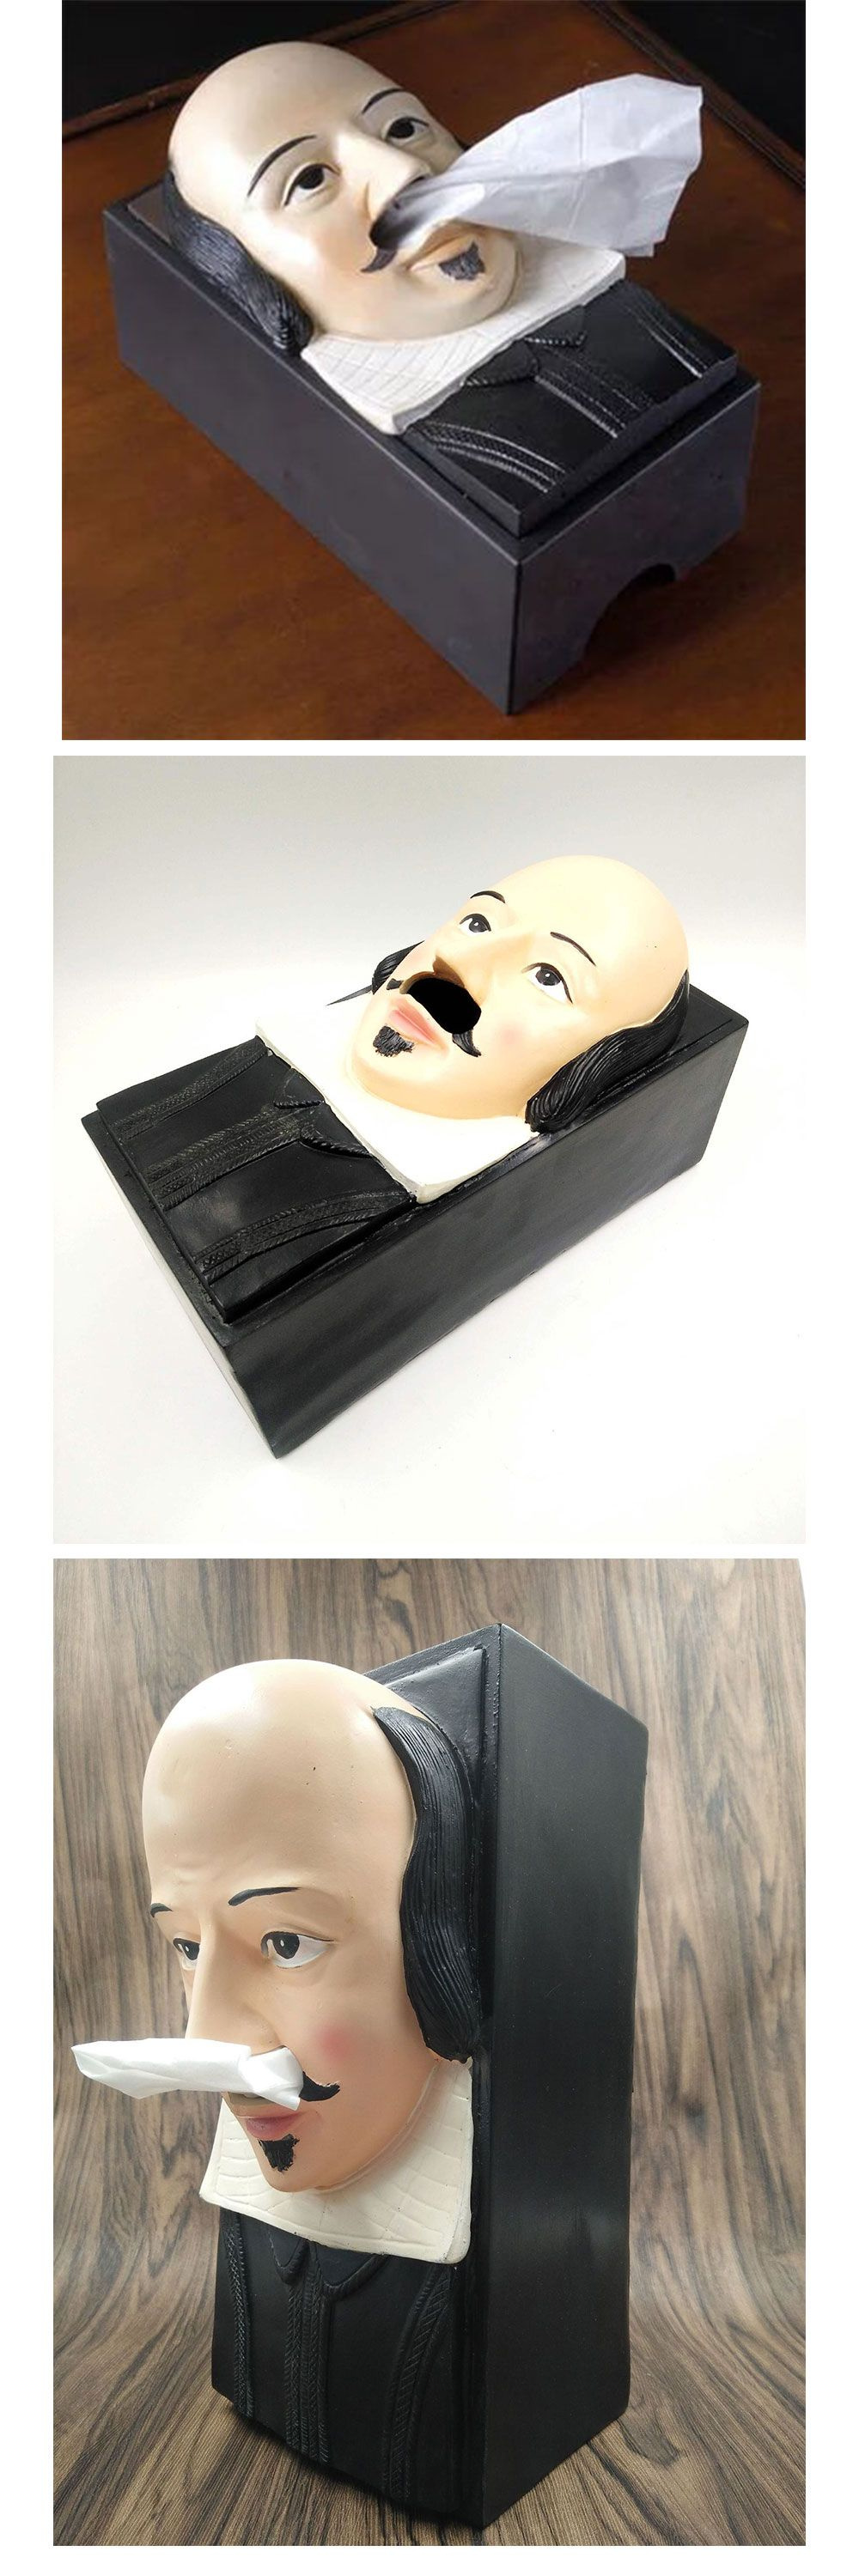 Creative Tissue Box To Sniff Or Not